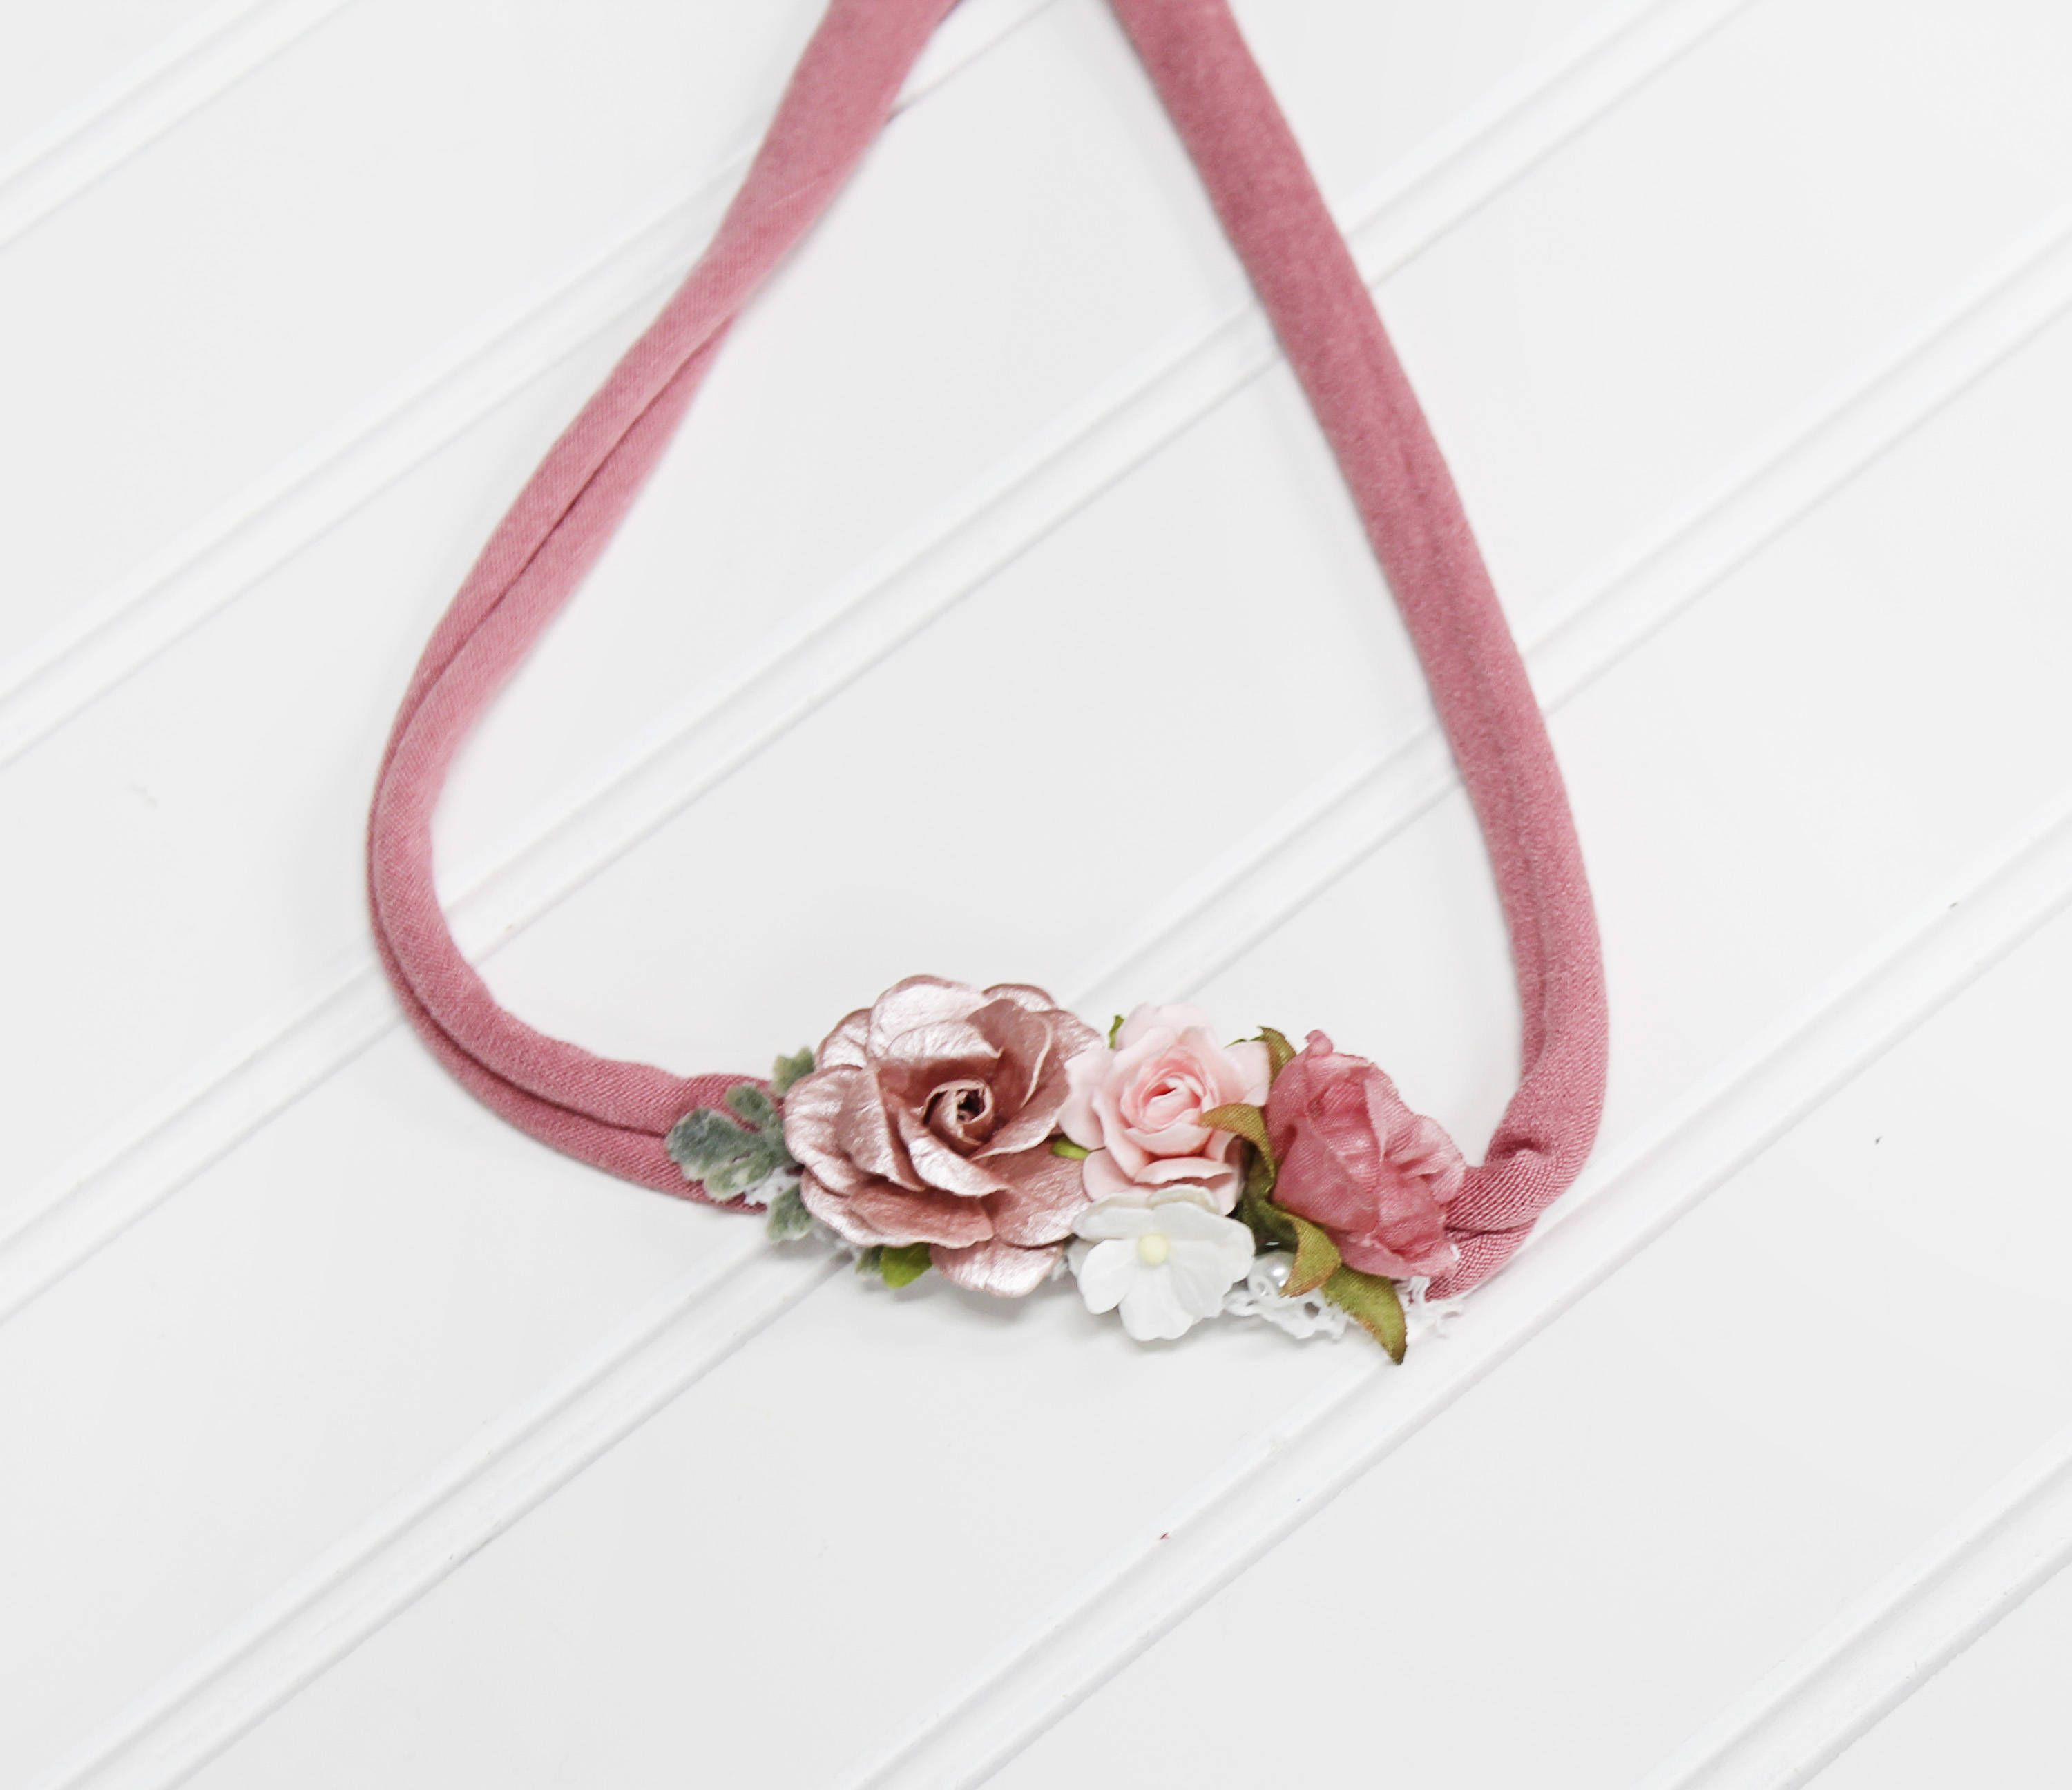 Made You Blush Beautiful Dainty Flower Headband In Dusty Rose